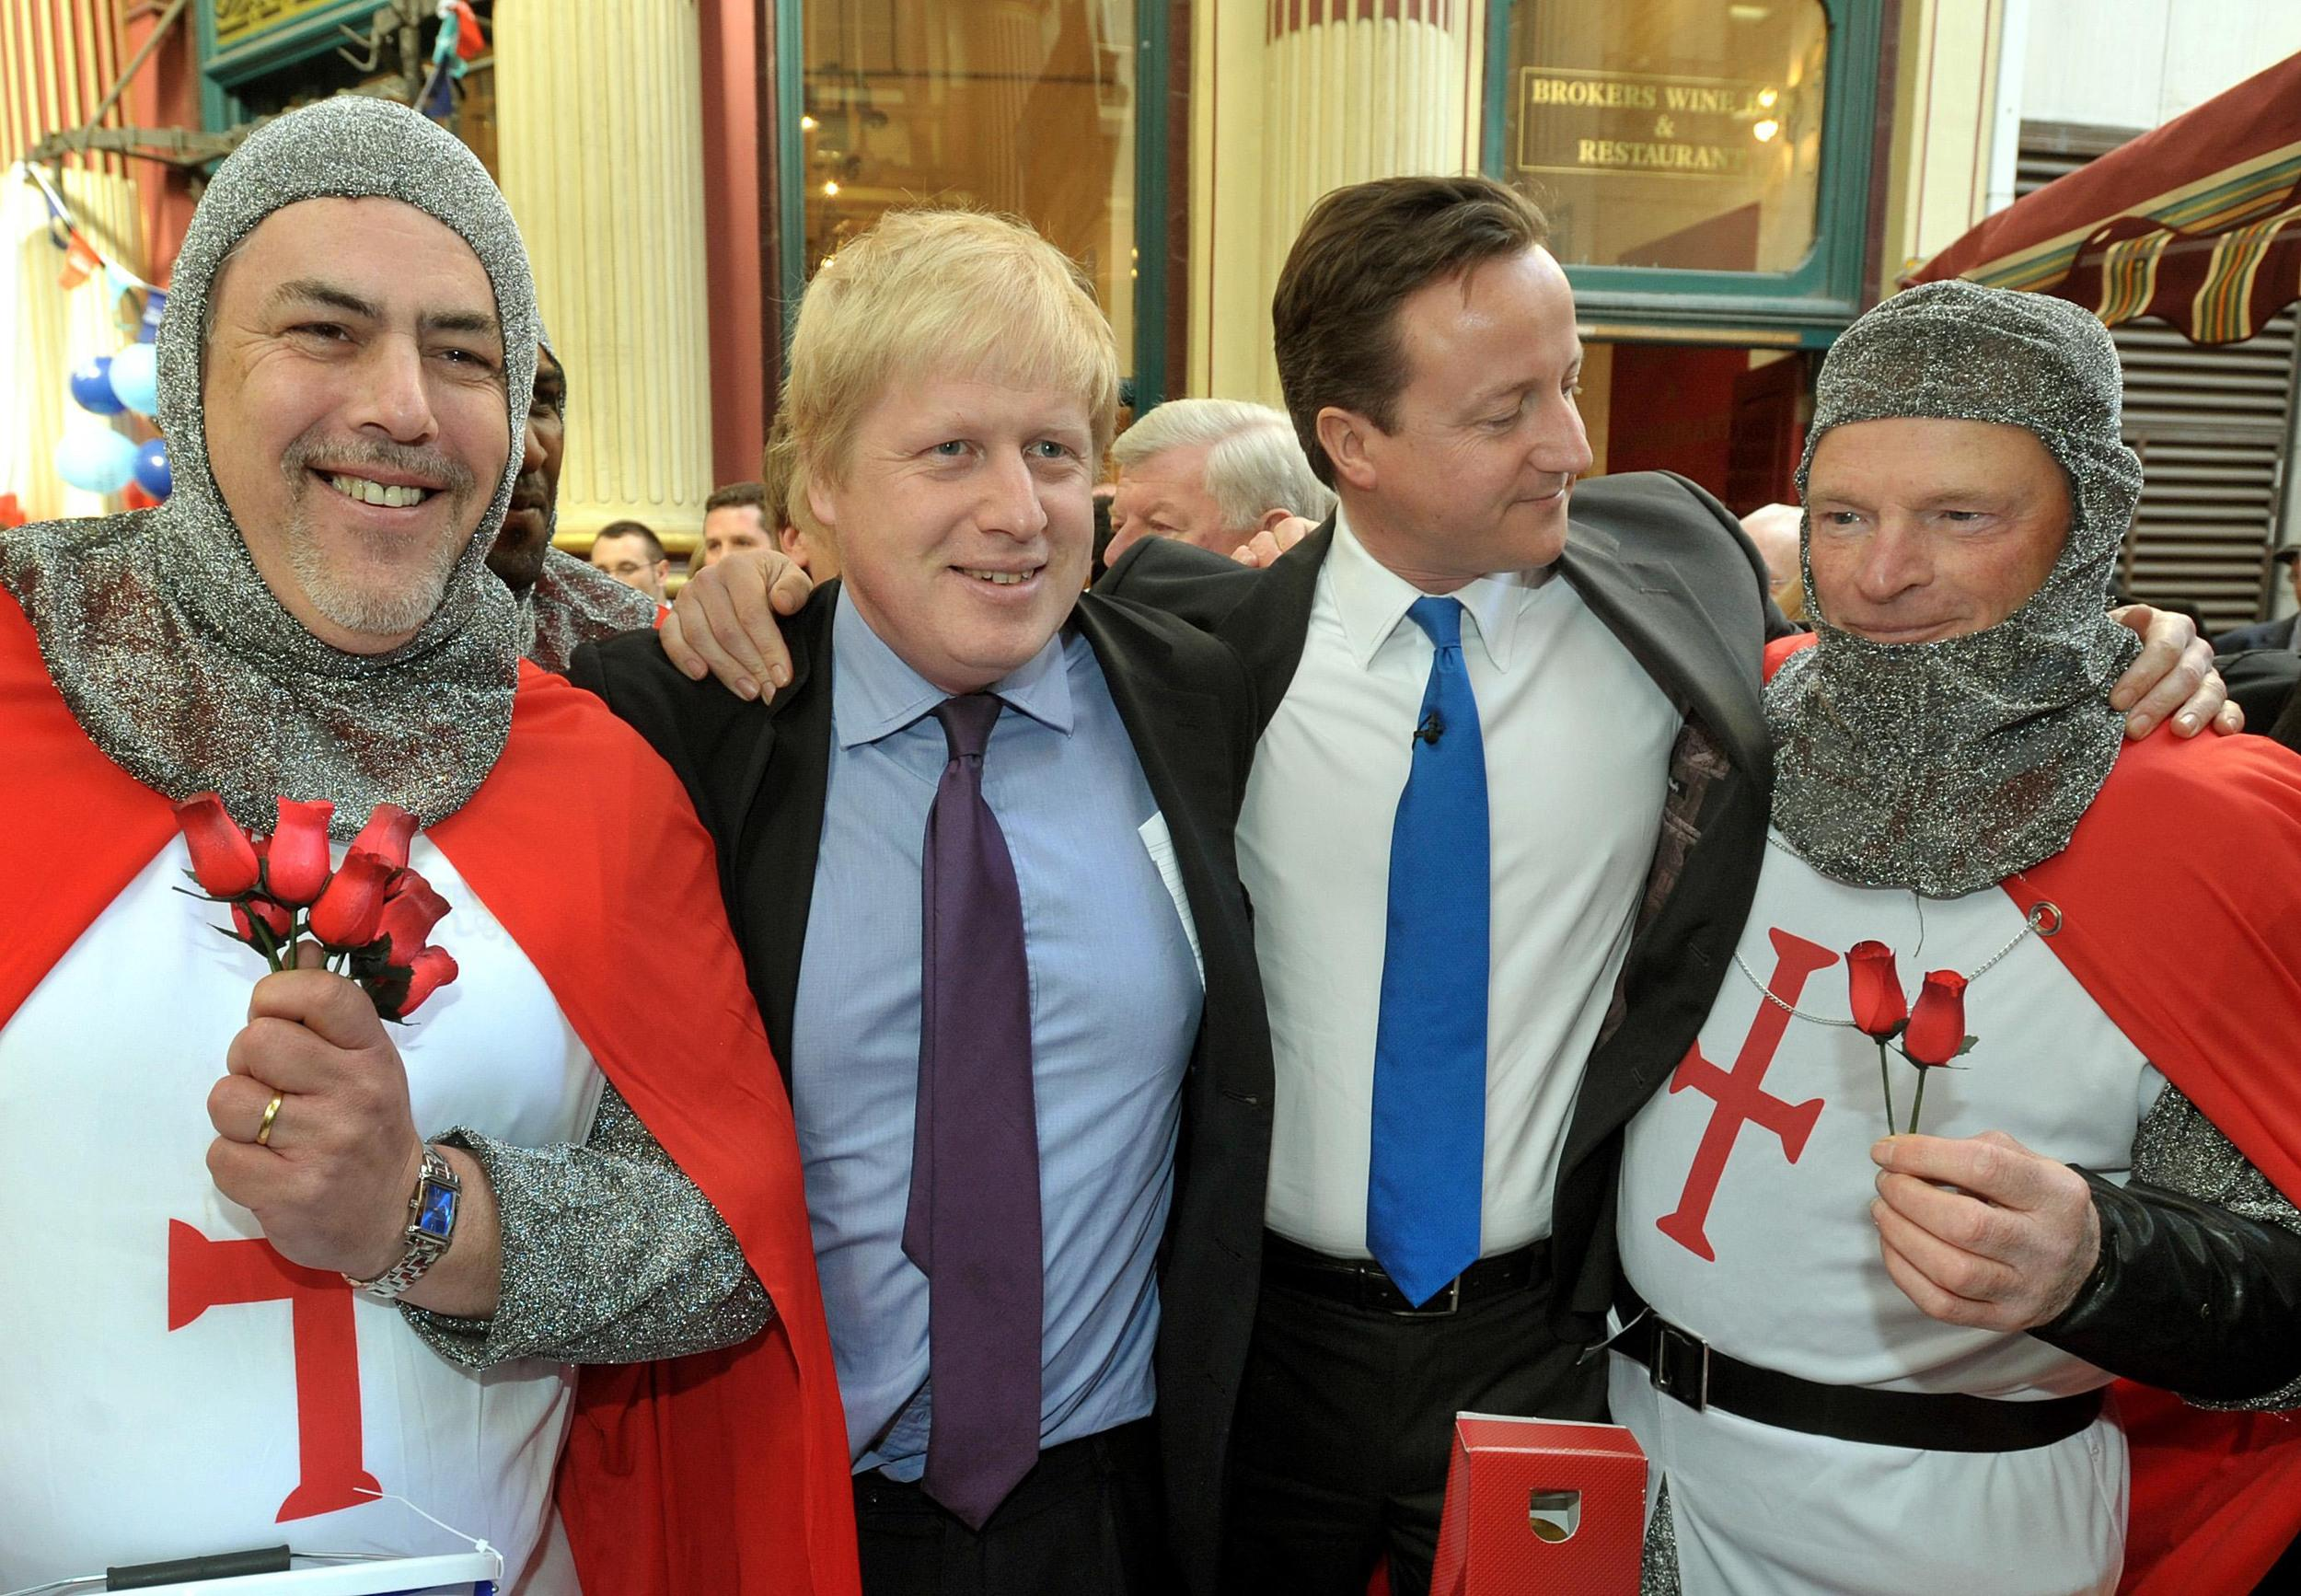 Leader of the Conservative Party David Cameron (2nd right) with Mayor of London Boris Johnson (2nd left) as they celebrate St George's day in Leadenhall Market in the City of London.